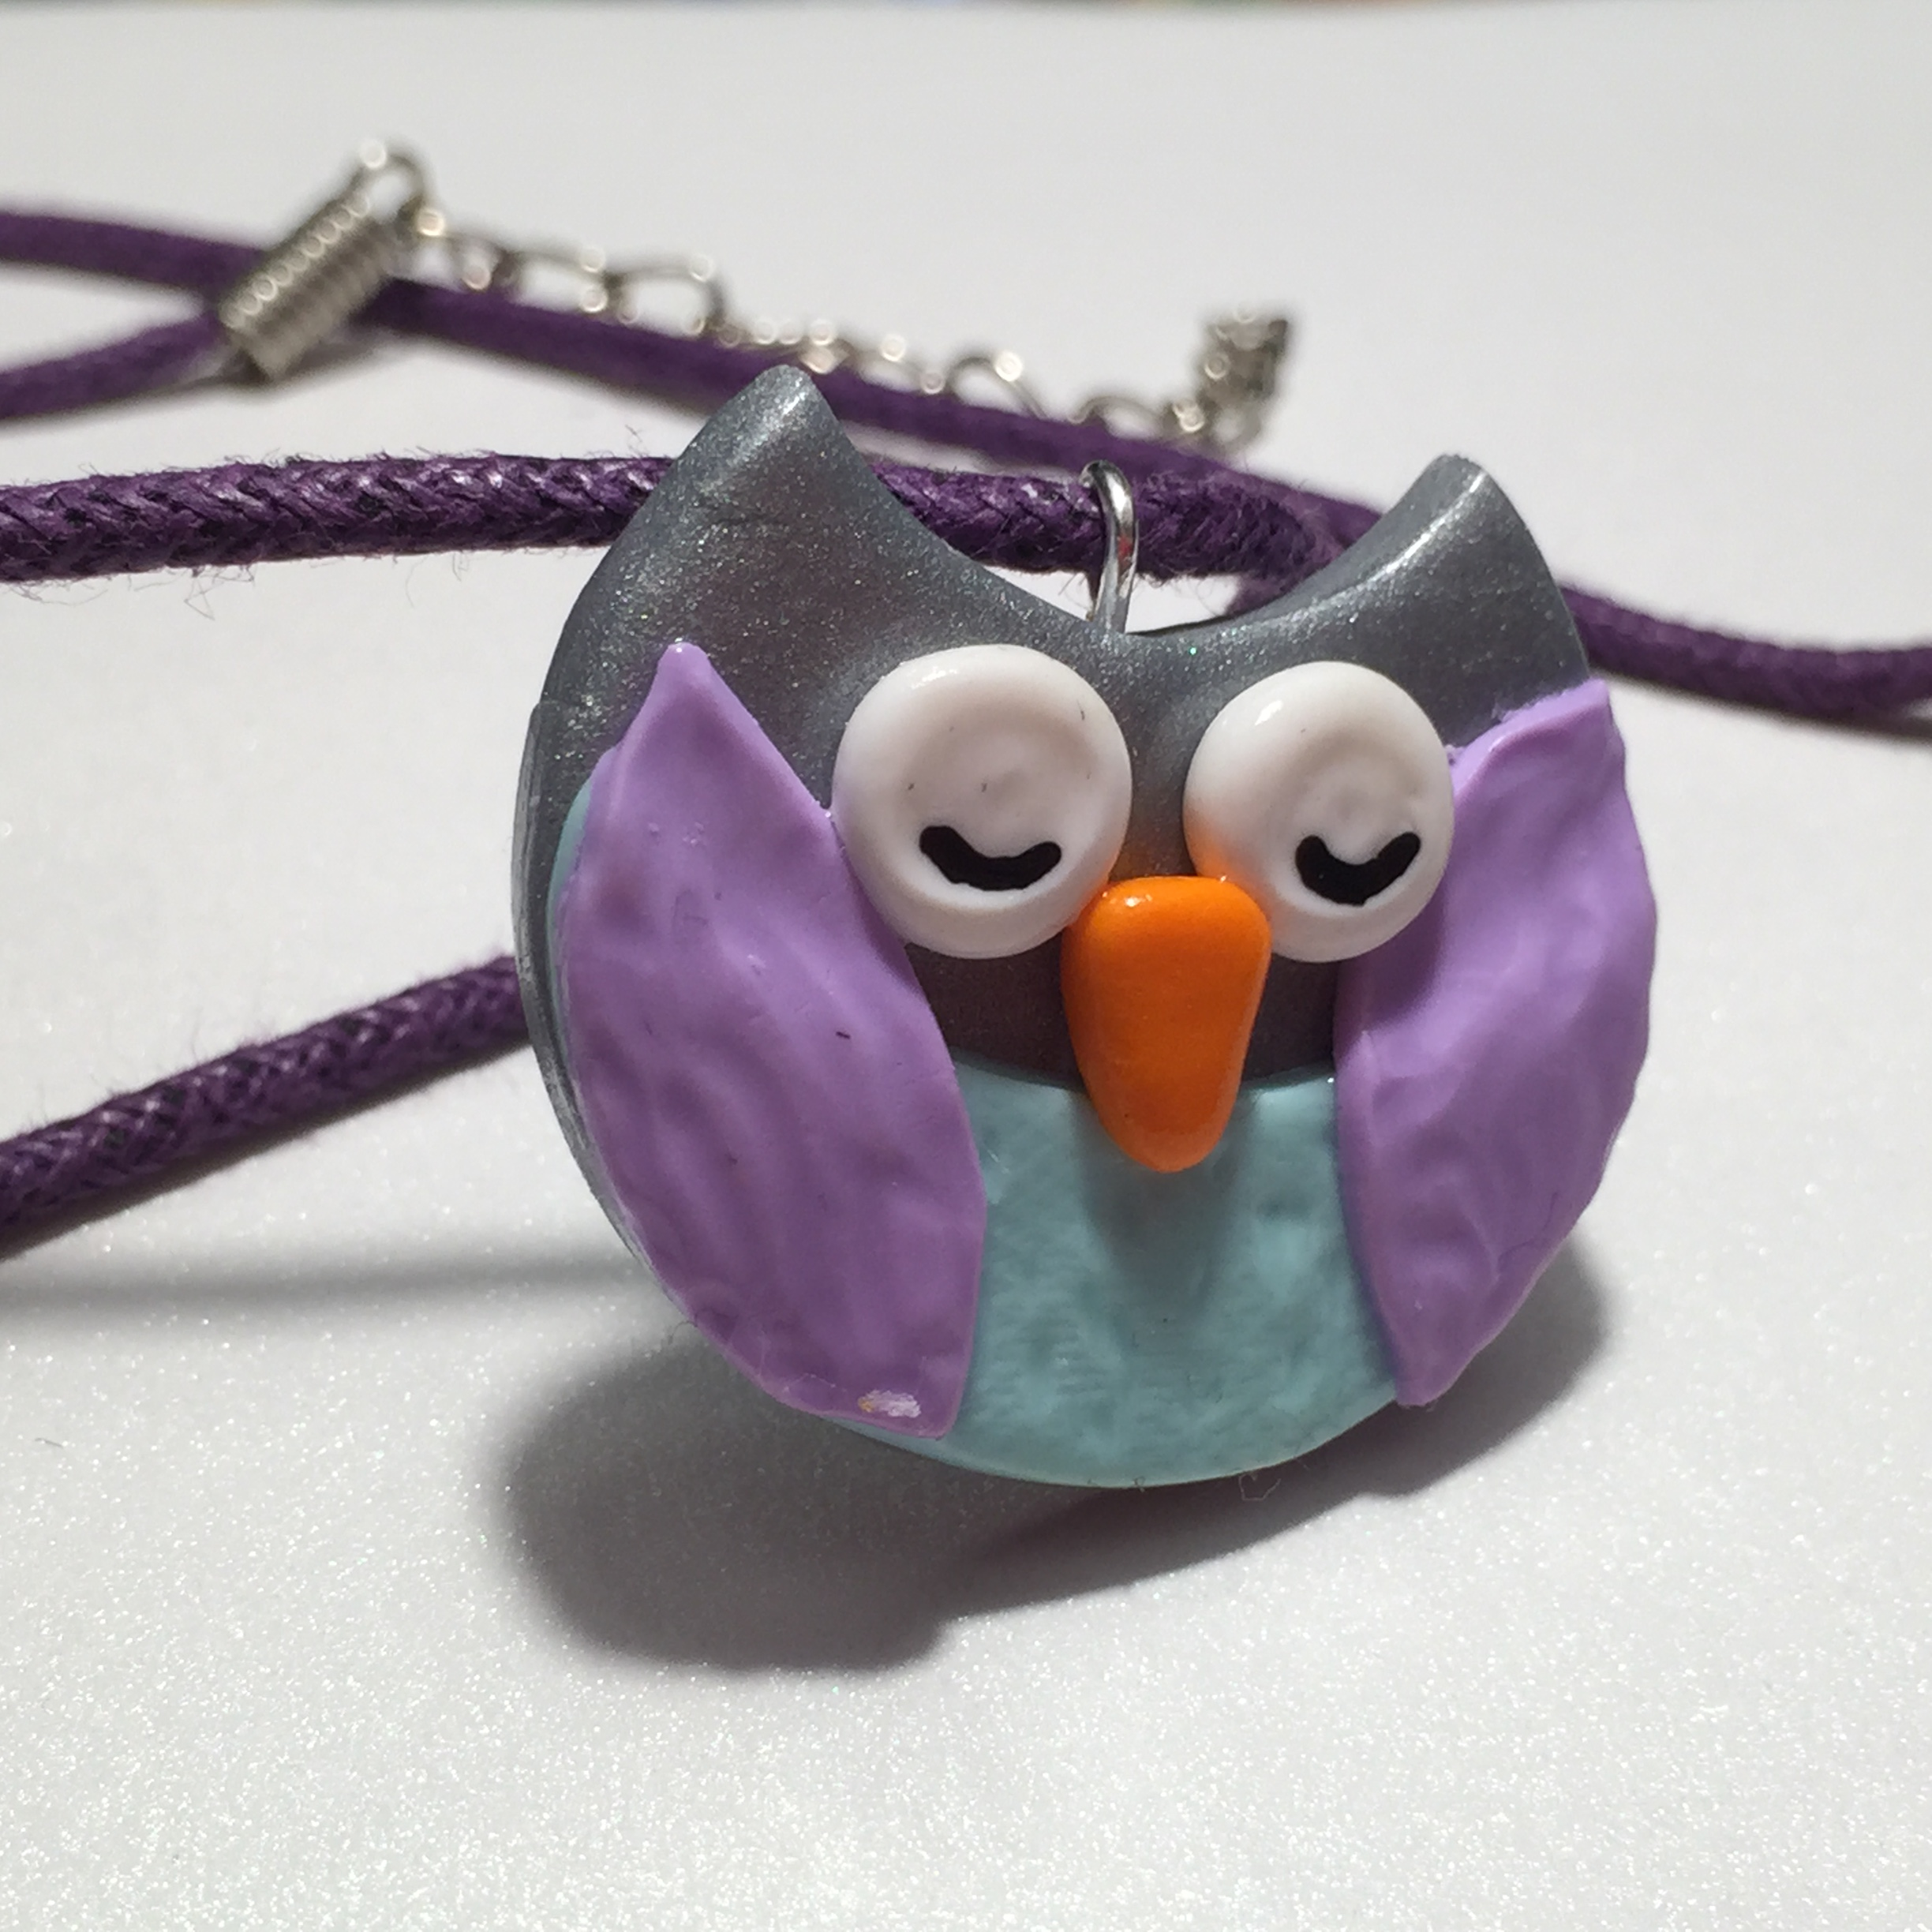 Cute Sleepy Owl Necklace Polymer Clay Jewelry, Fimo clay, rilakkumashop.nl